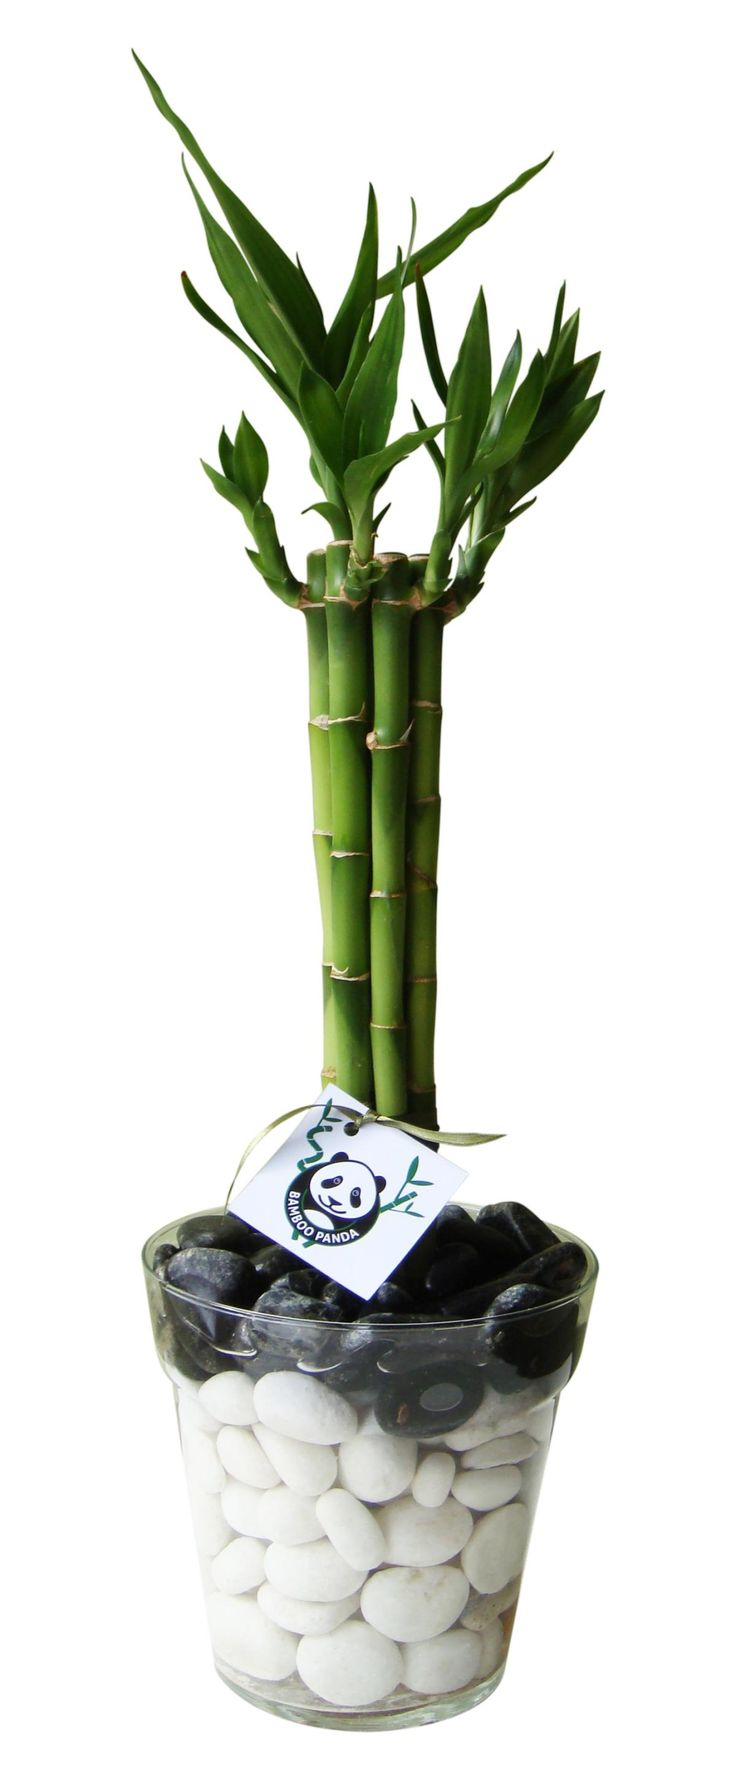 17 best ideas about lucky bamboo on pinterest lucky bamboo plants lucky plant and bamboo plants. Black Bedroom Furniture Sets. Home Design Ideas